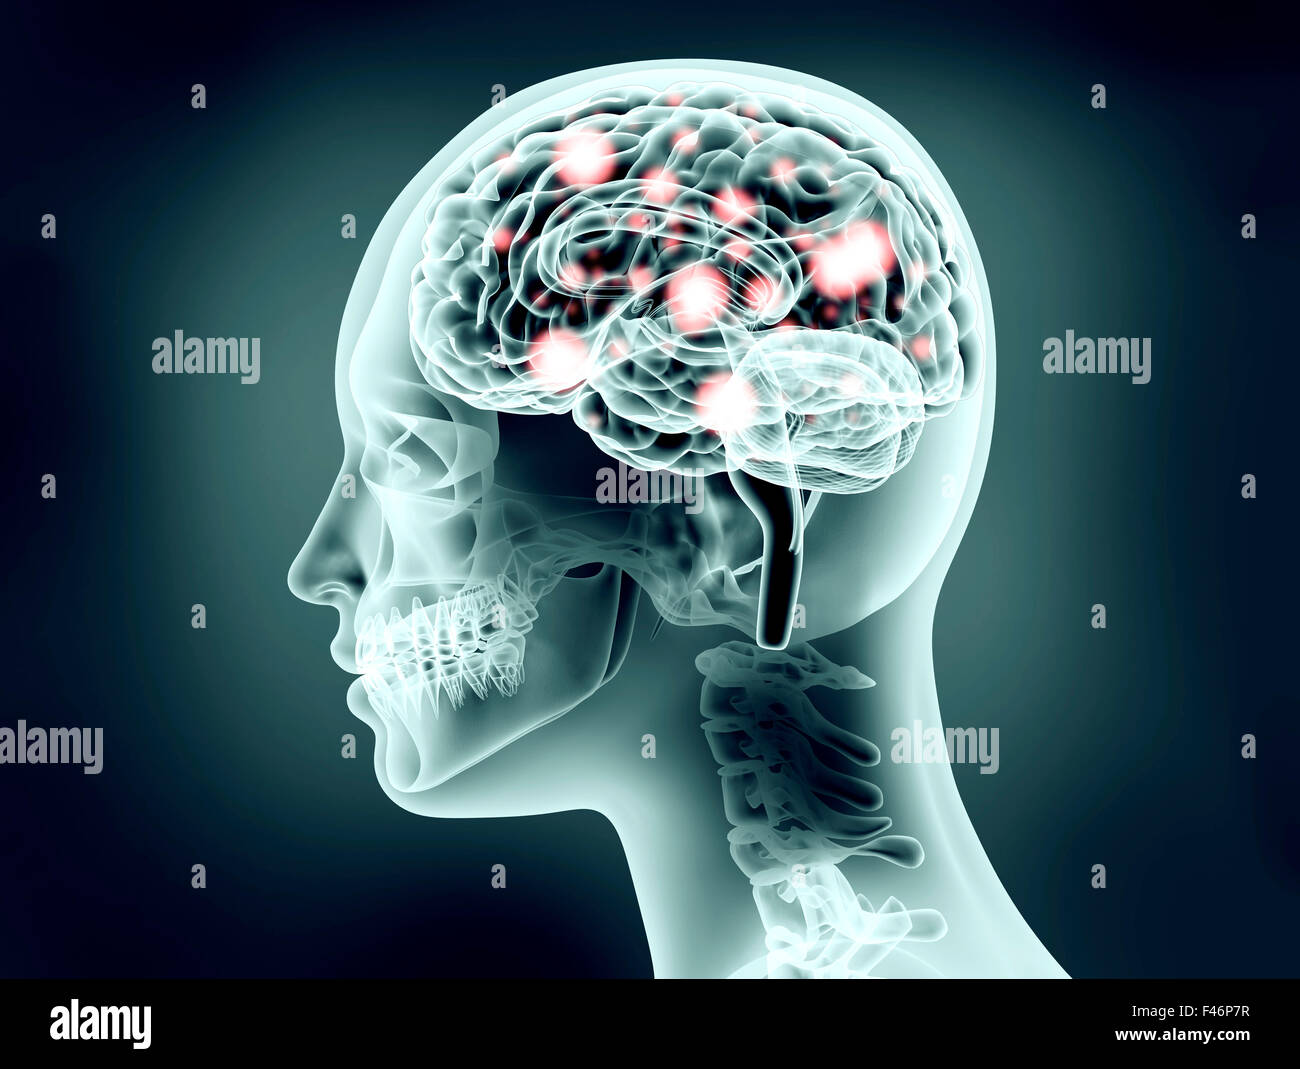 x-ray image of human head with brain and electric pulses - Stock Image